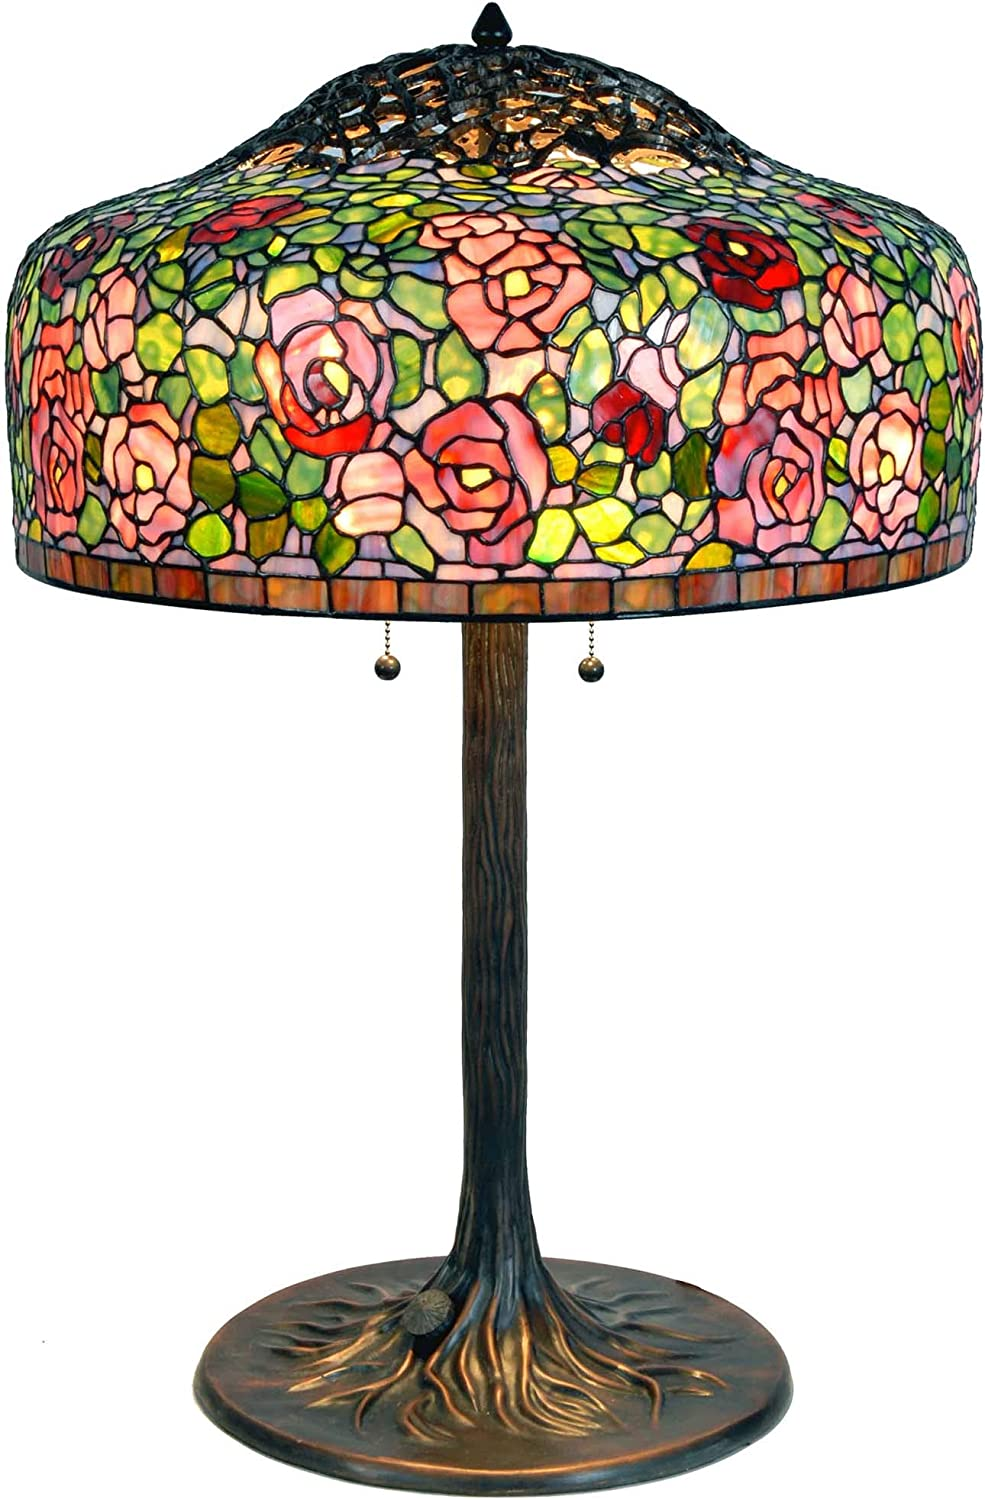 Bieye L10794 Rose latest Flowers Tiffany Lamp Ranking TOP4 Table Glass Style Stained